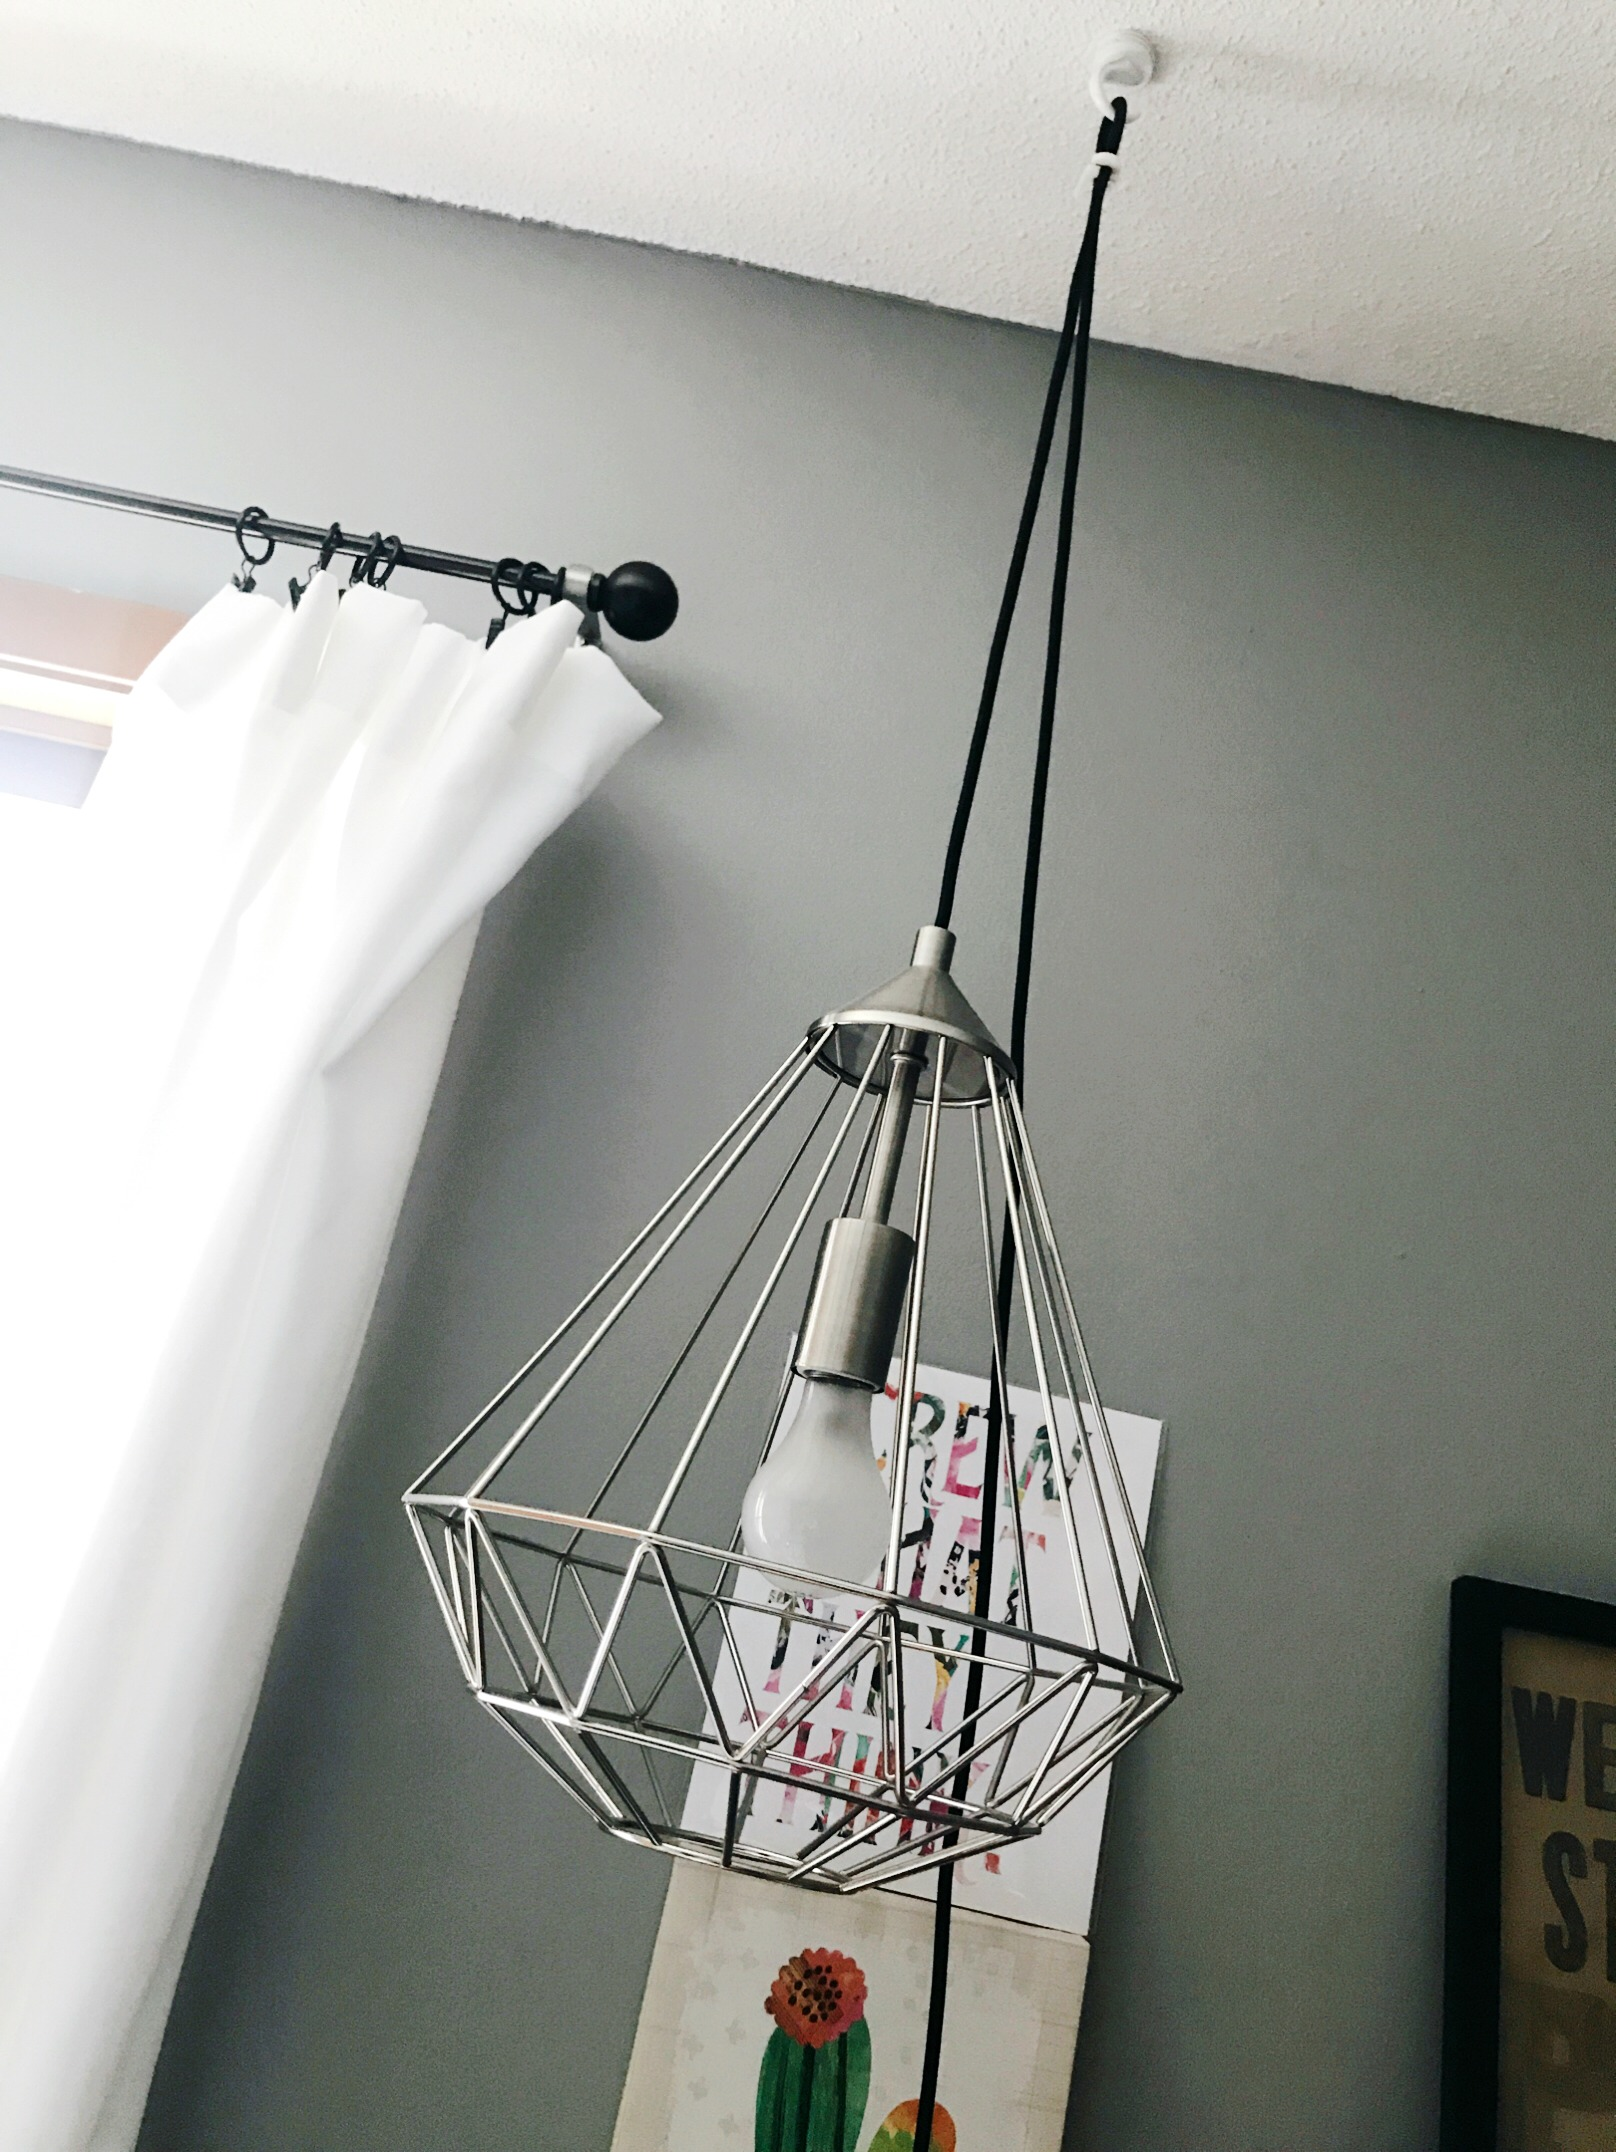 How to Save Space with a Pendant Light from hprallandco.com